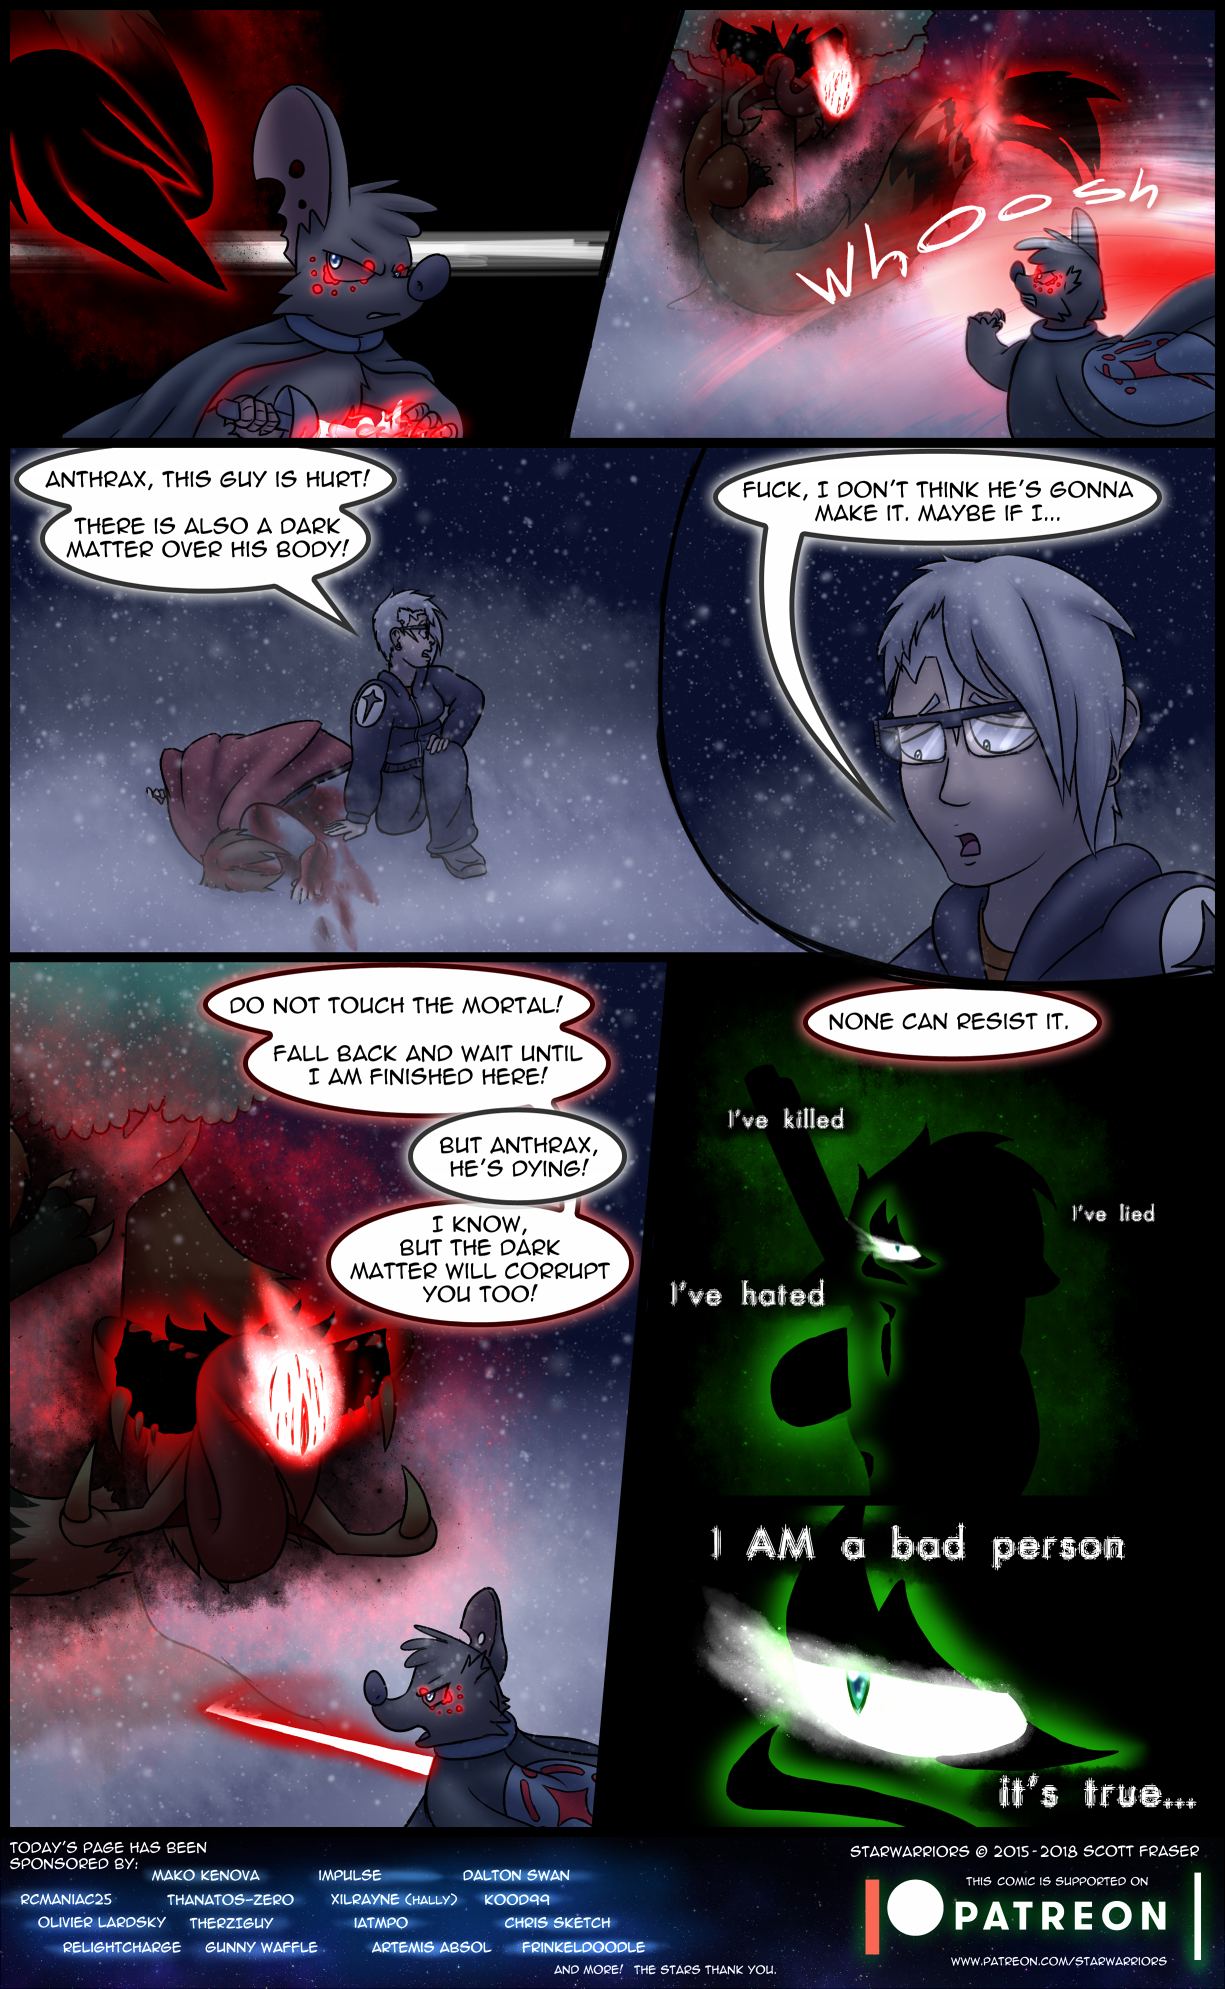 Ch3 Page 37 – None Can Resist